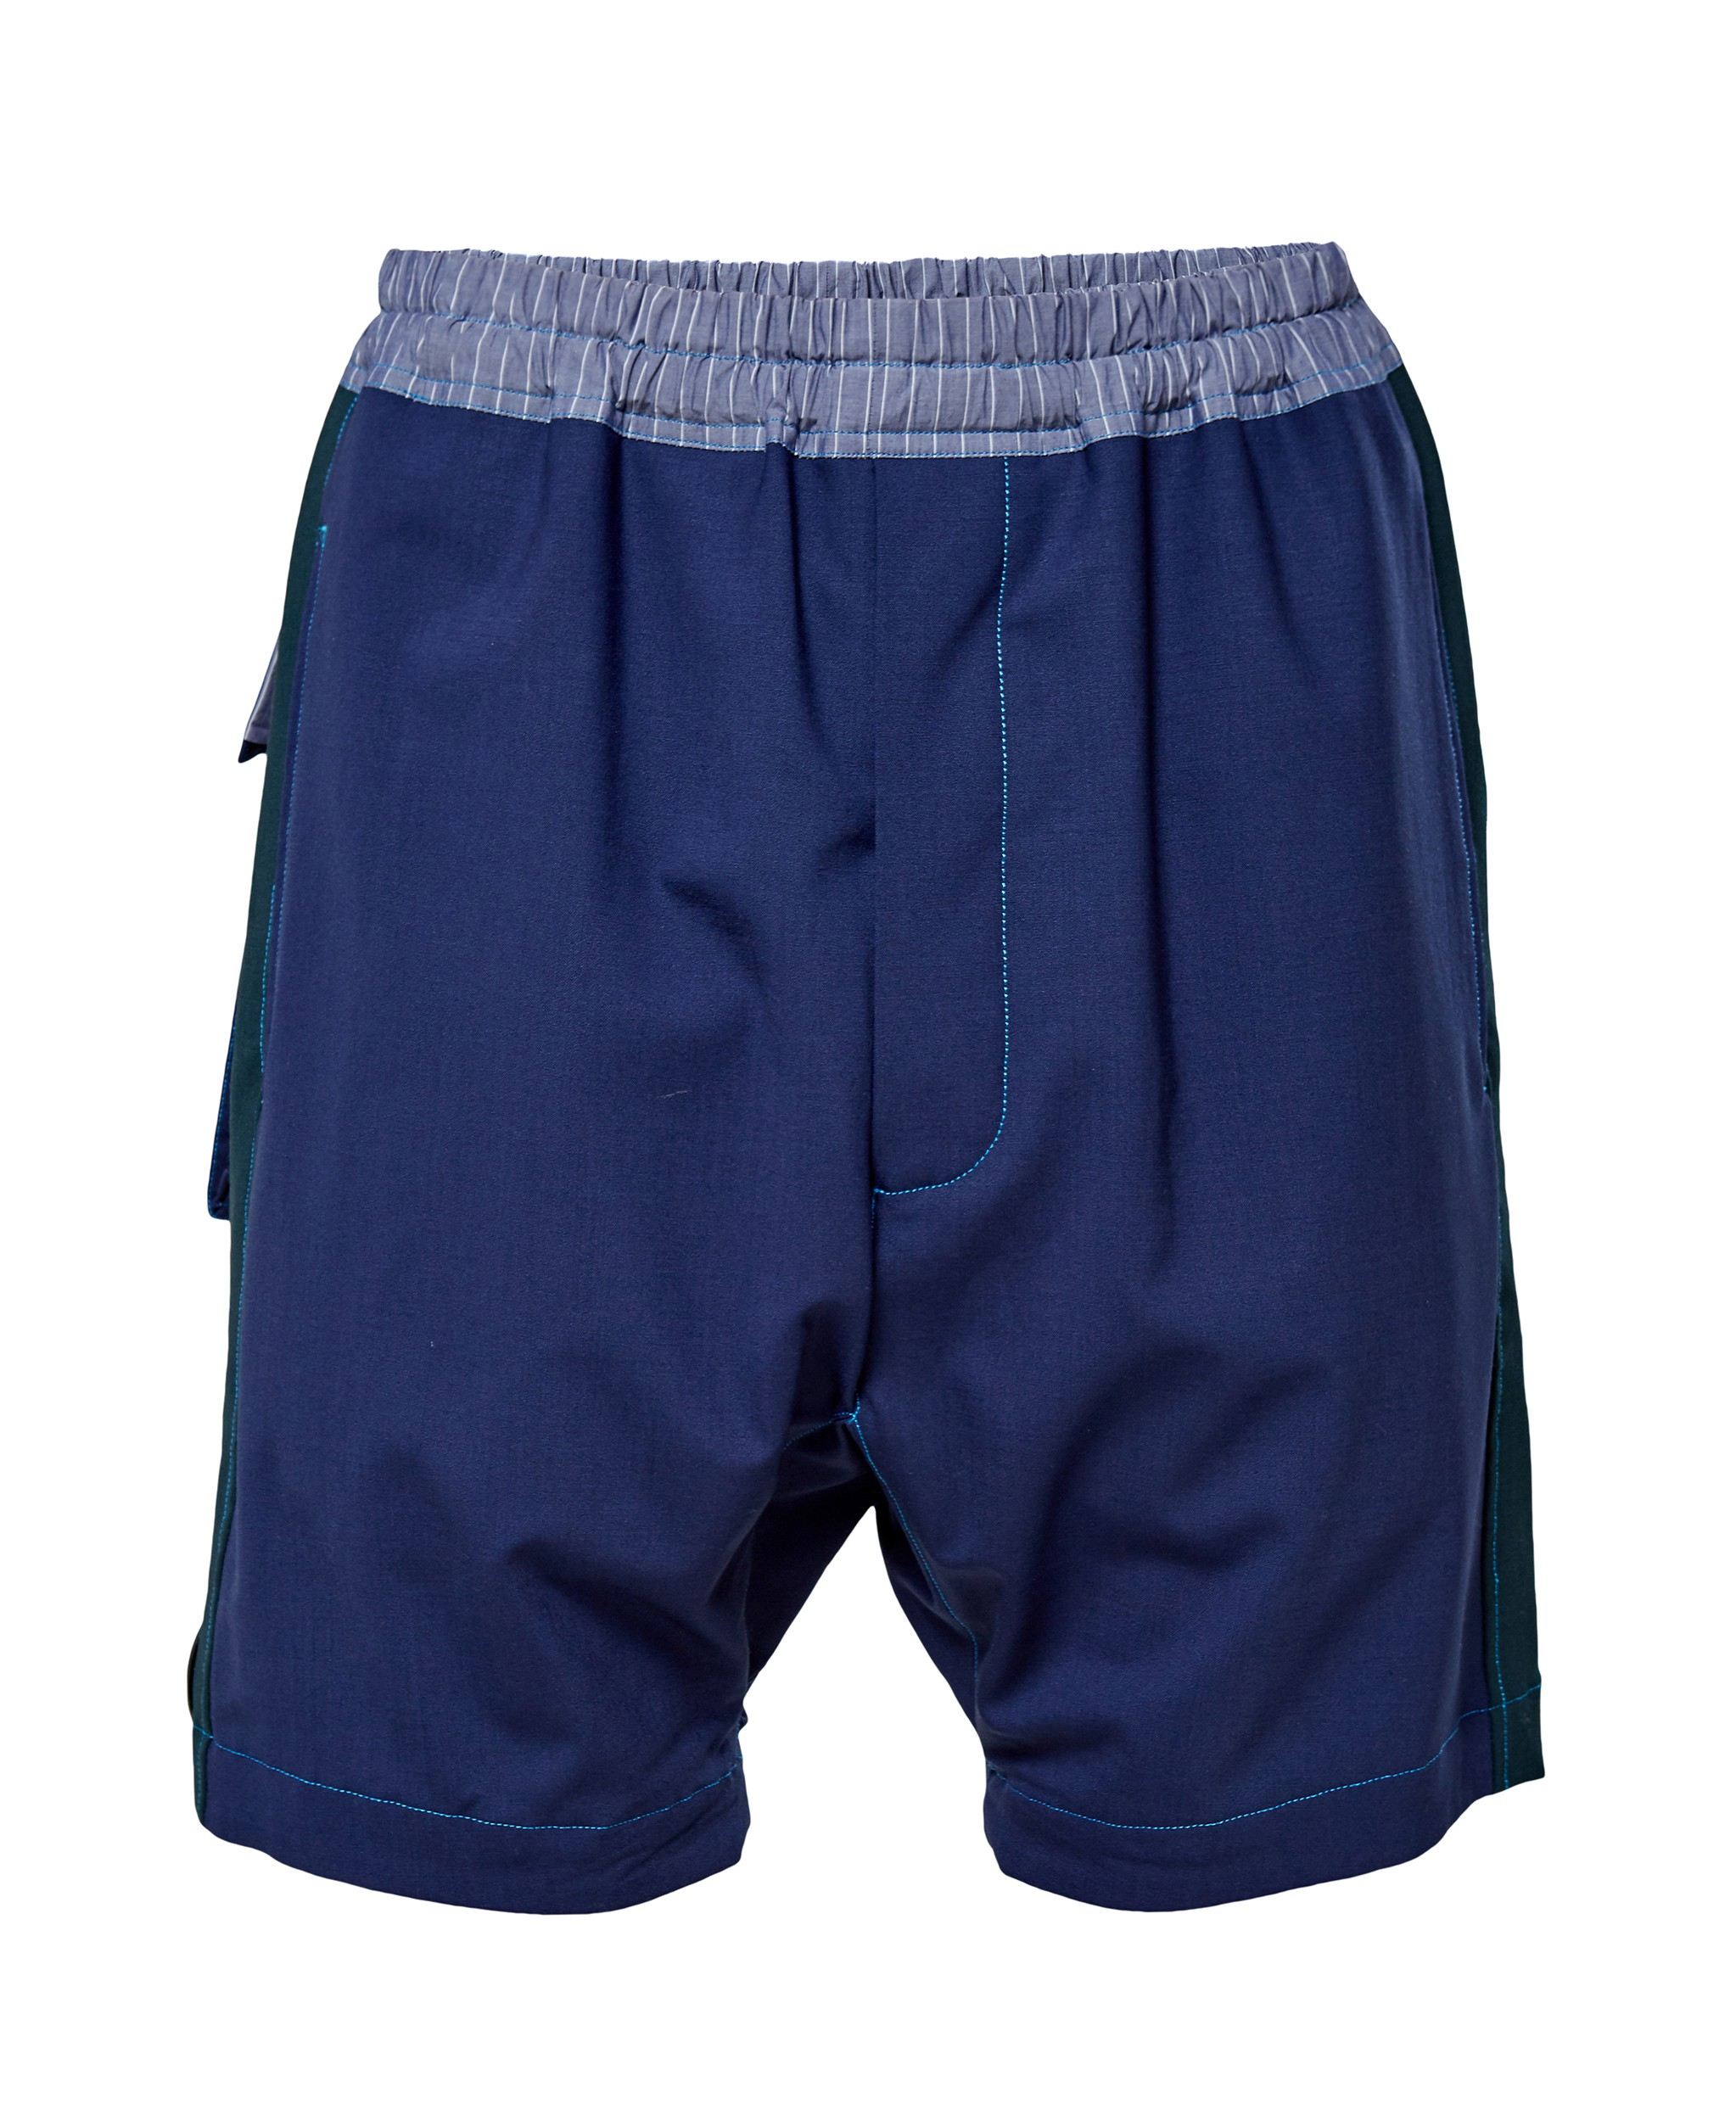 BERNHARD WILLHELM - BERNHARD WILLHELM Embroidered Shorts - navy